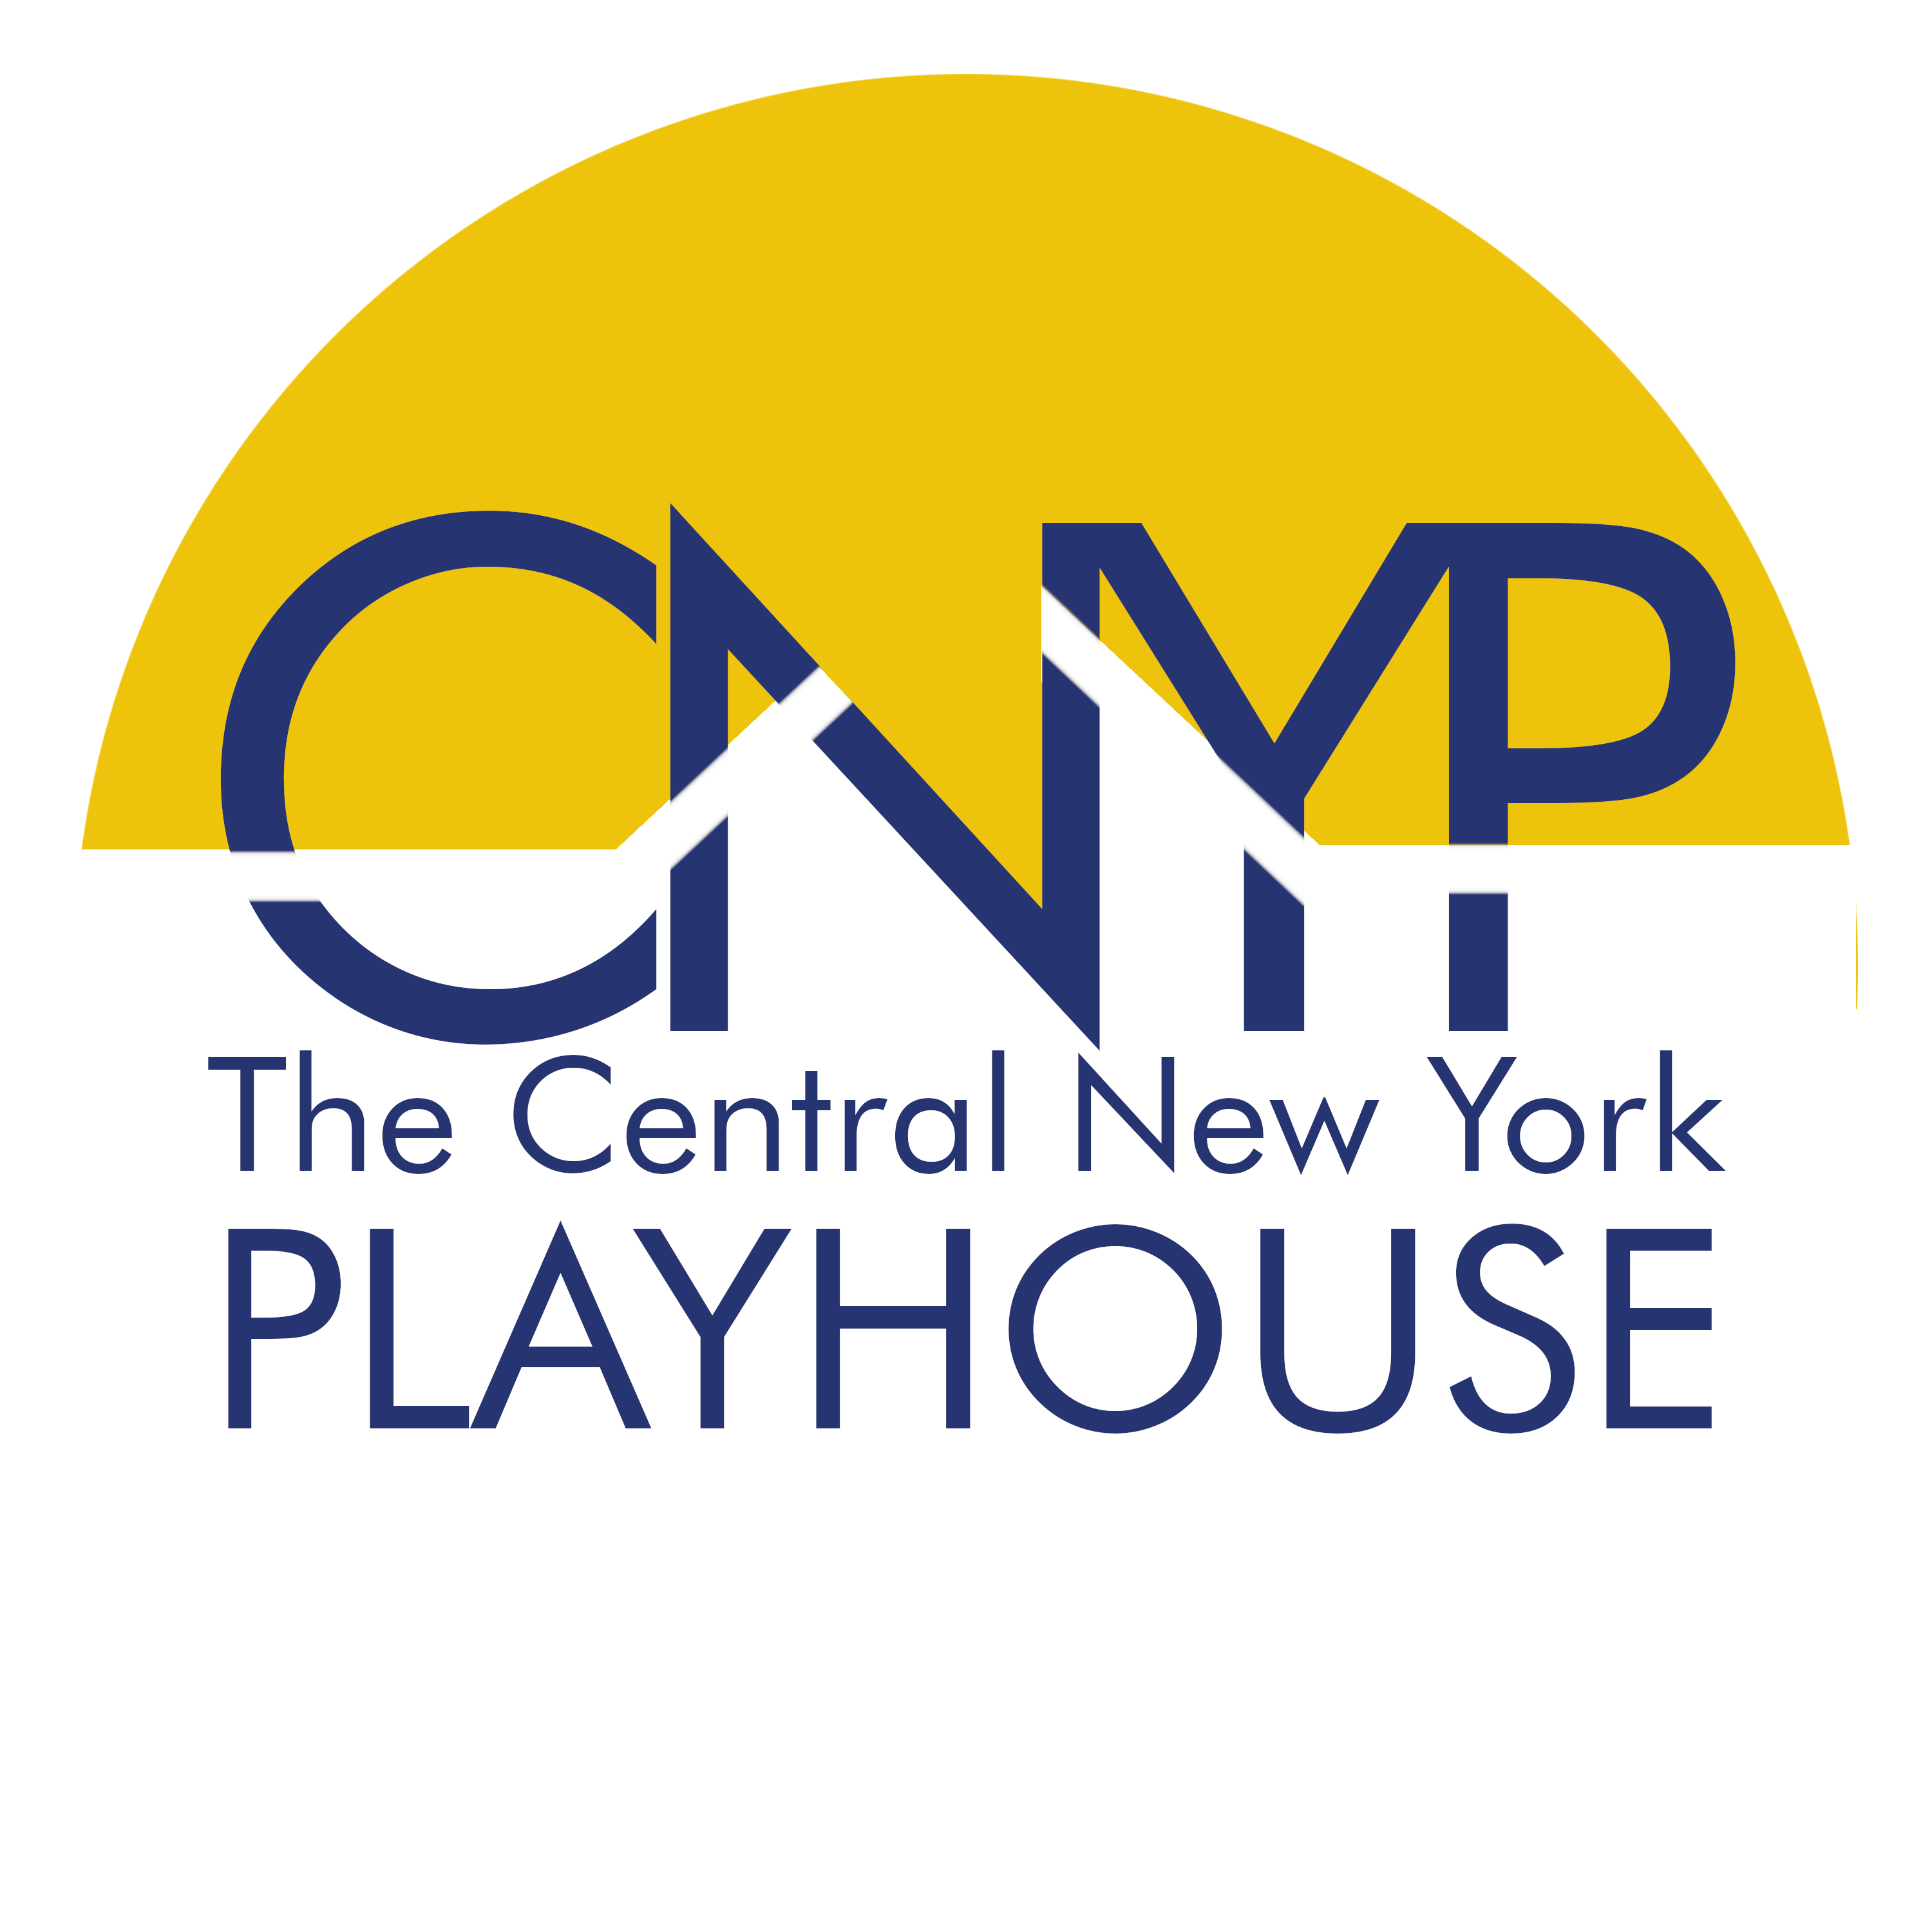 The Central New York Playhouse